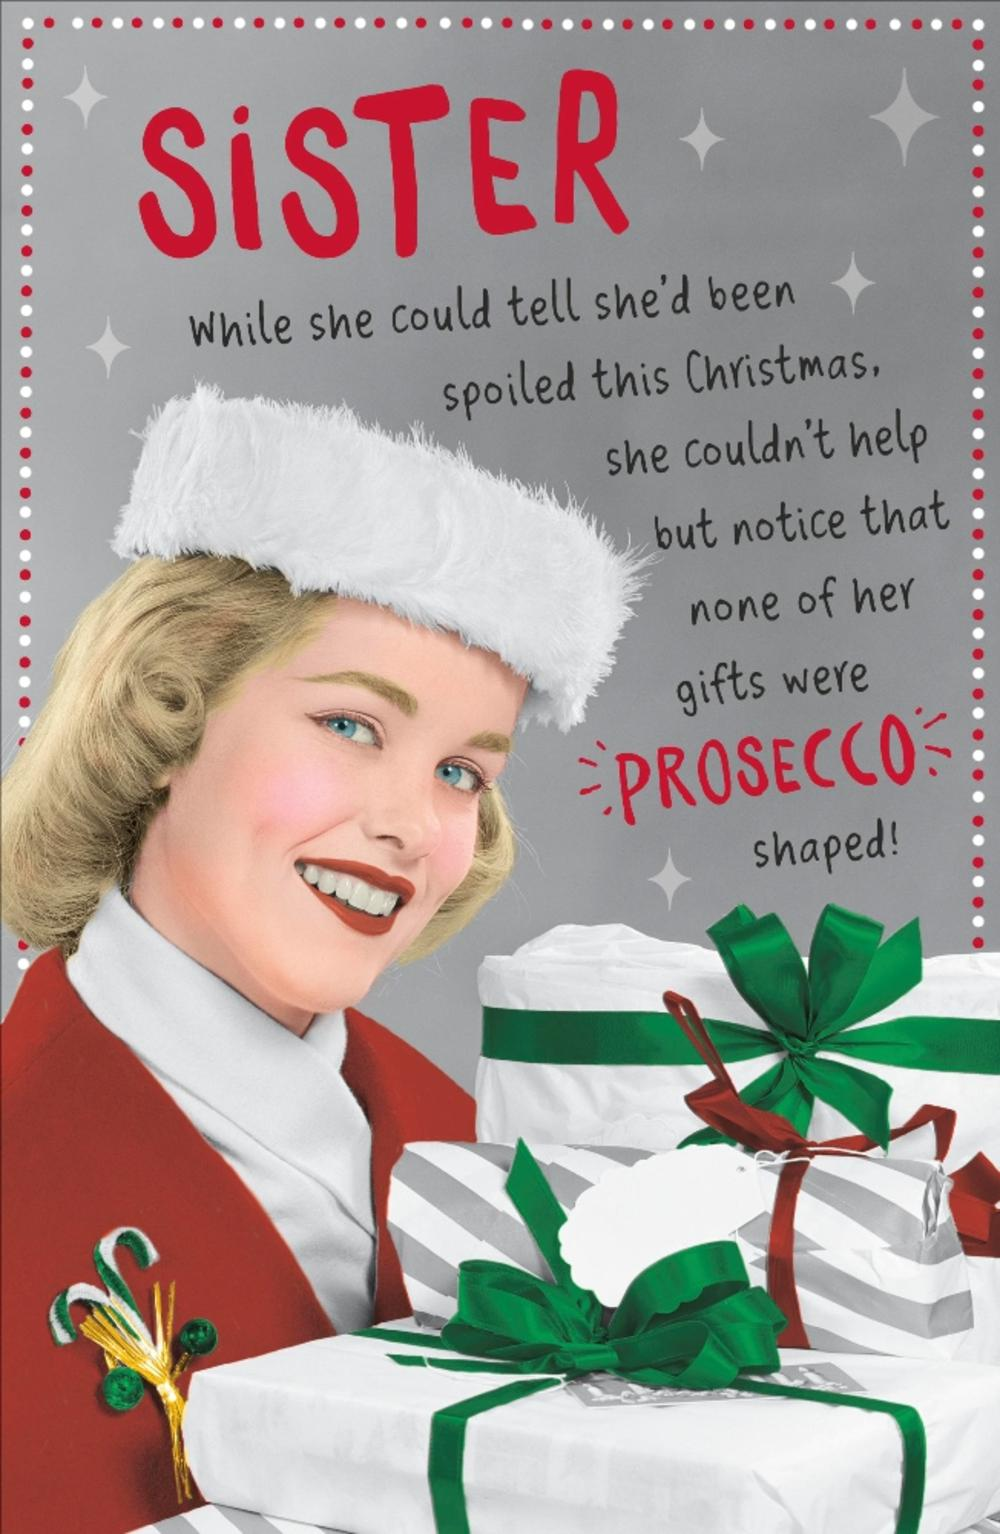 Retro Christmas.Sister Funny Retro Christmas Greeting Card